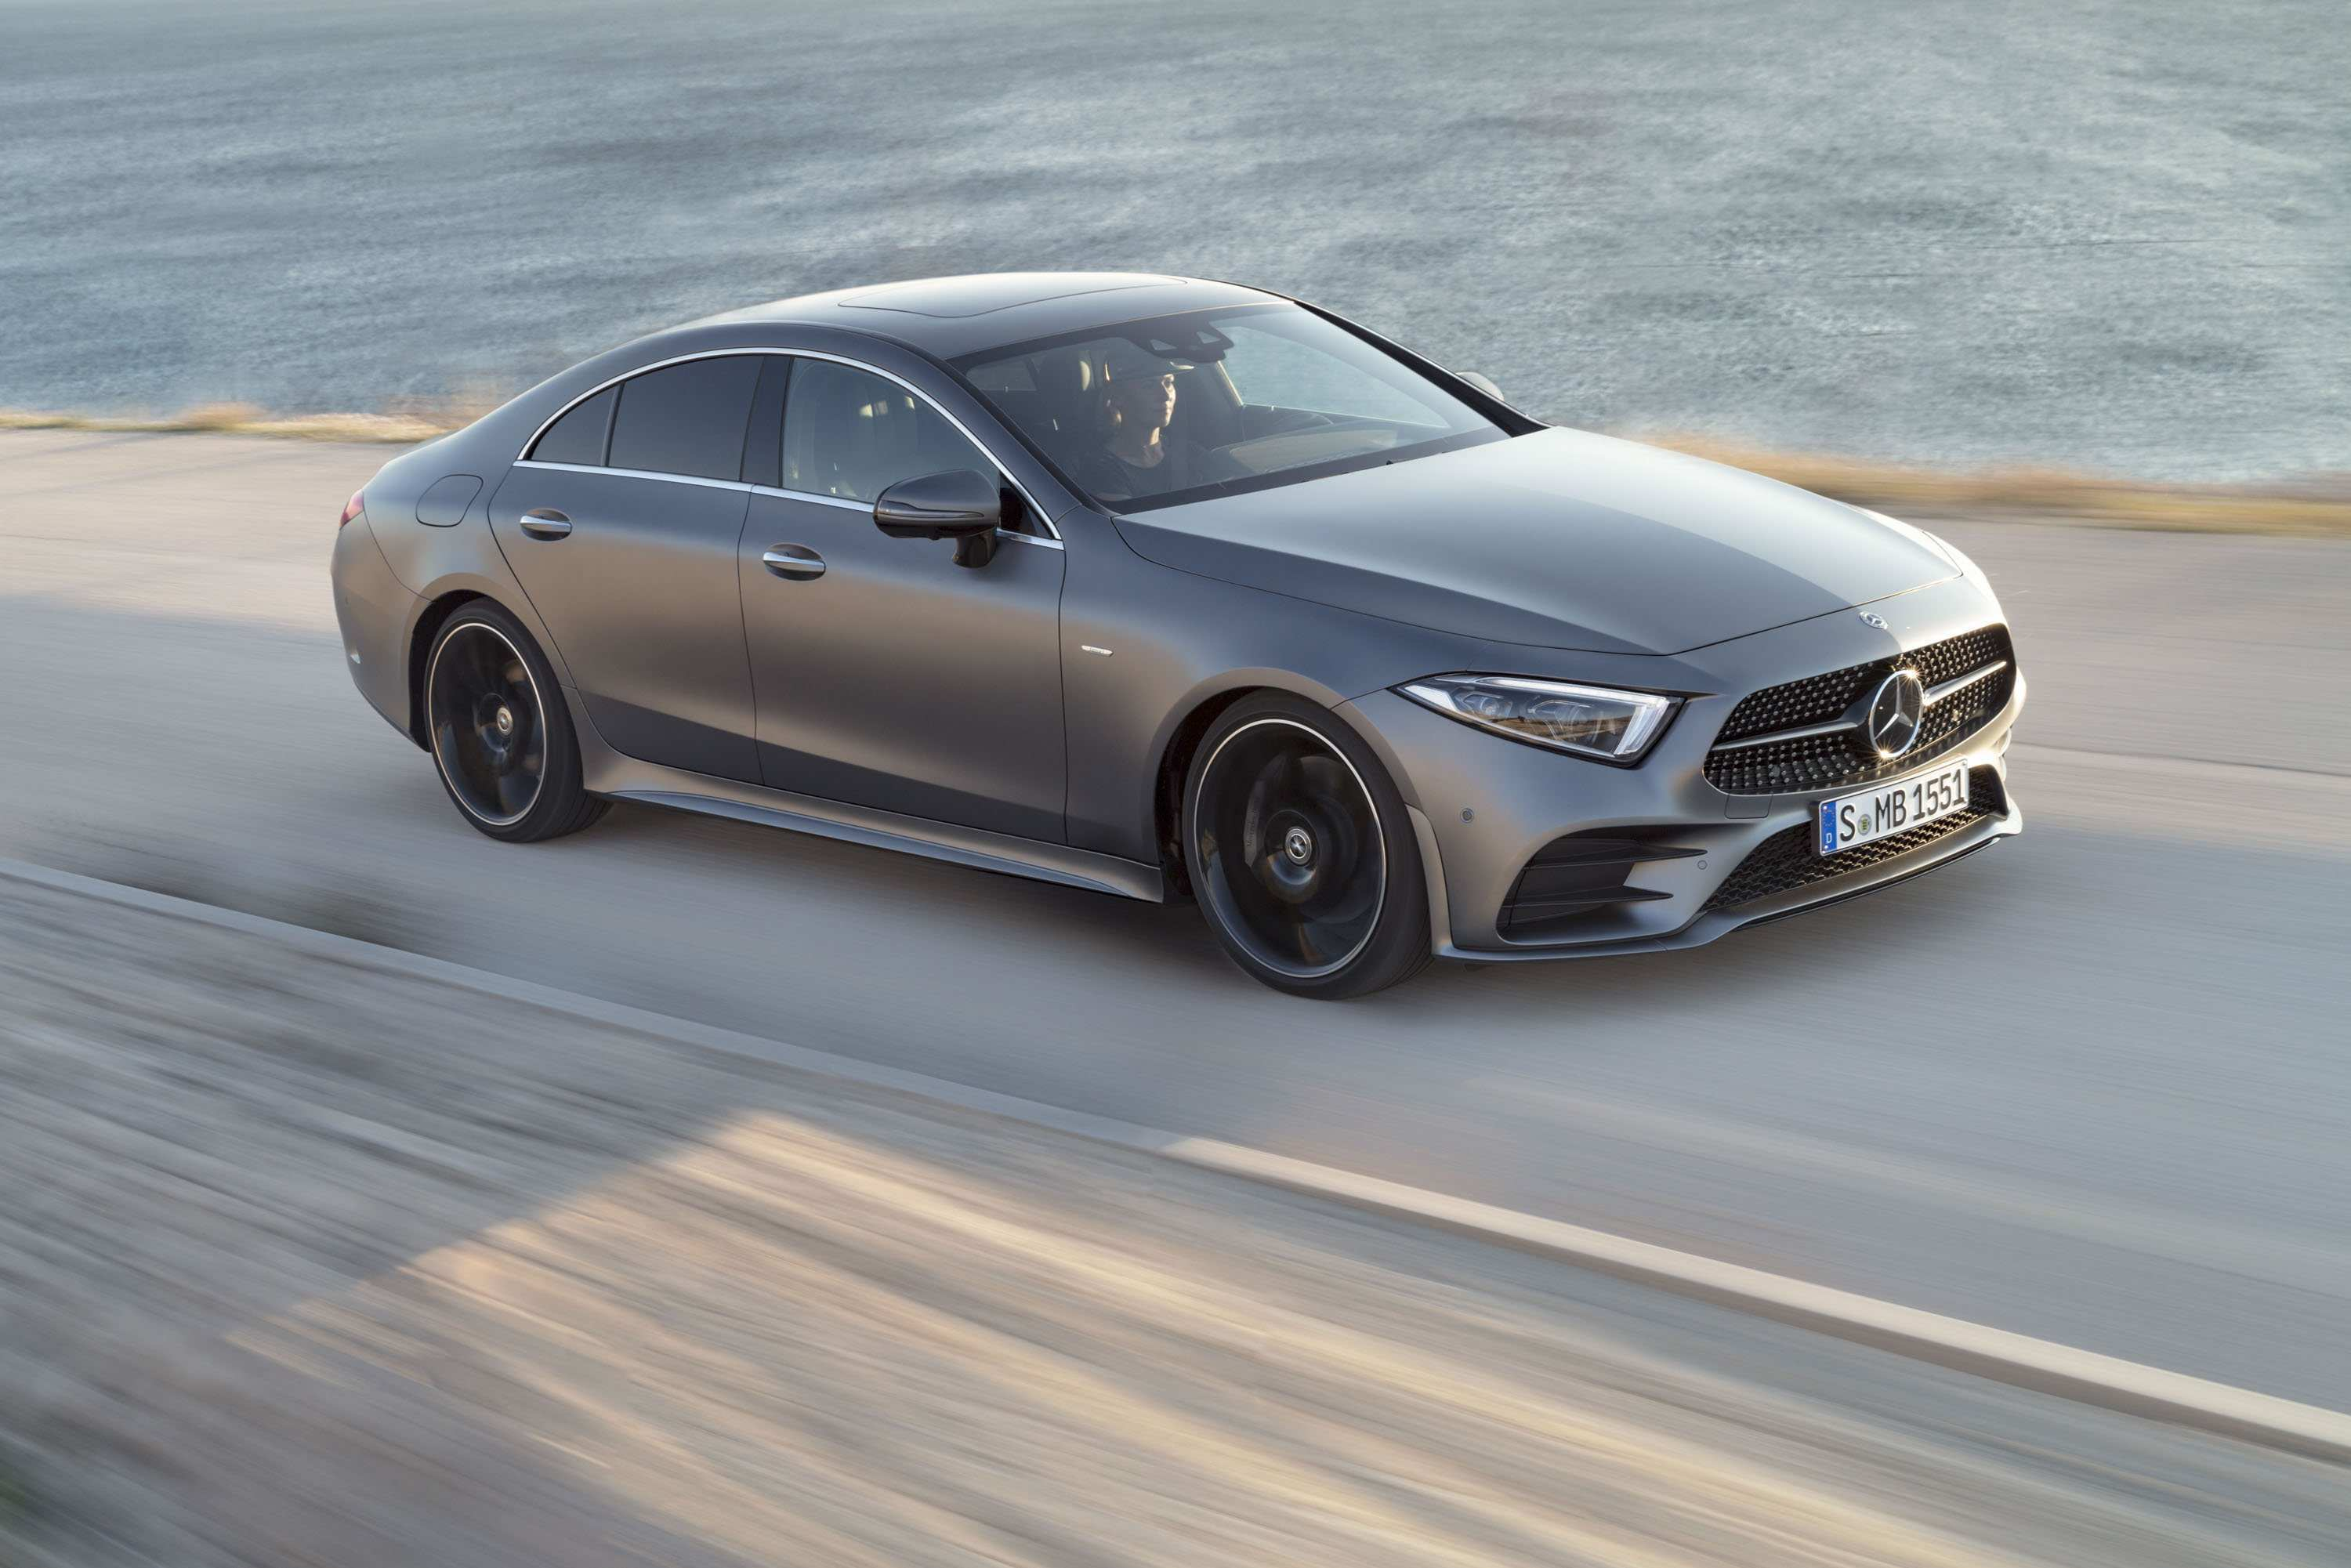 66 Gallery of Mercedes 2020 Cls Price for Mercedes 2020 Cls